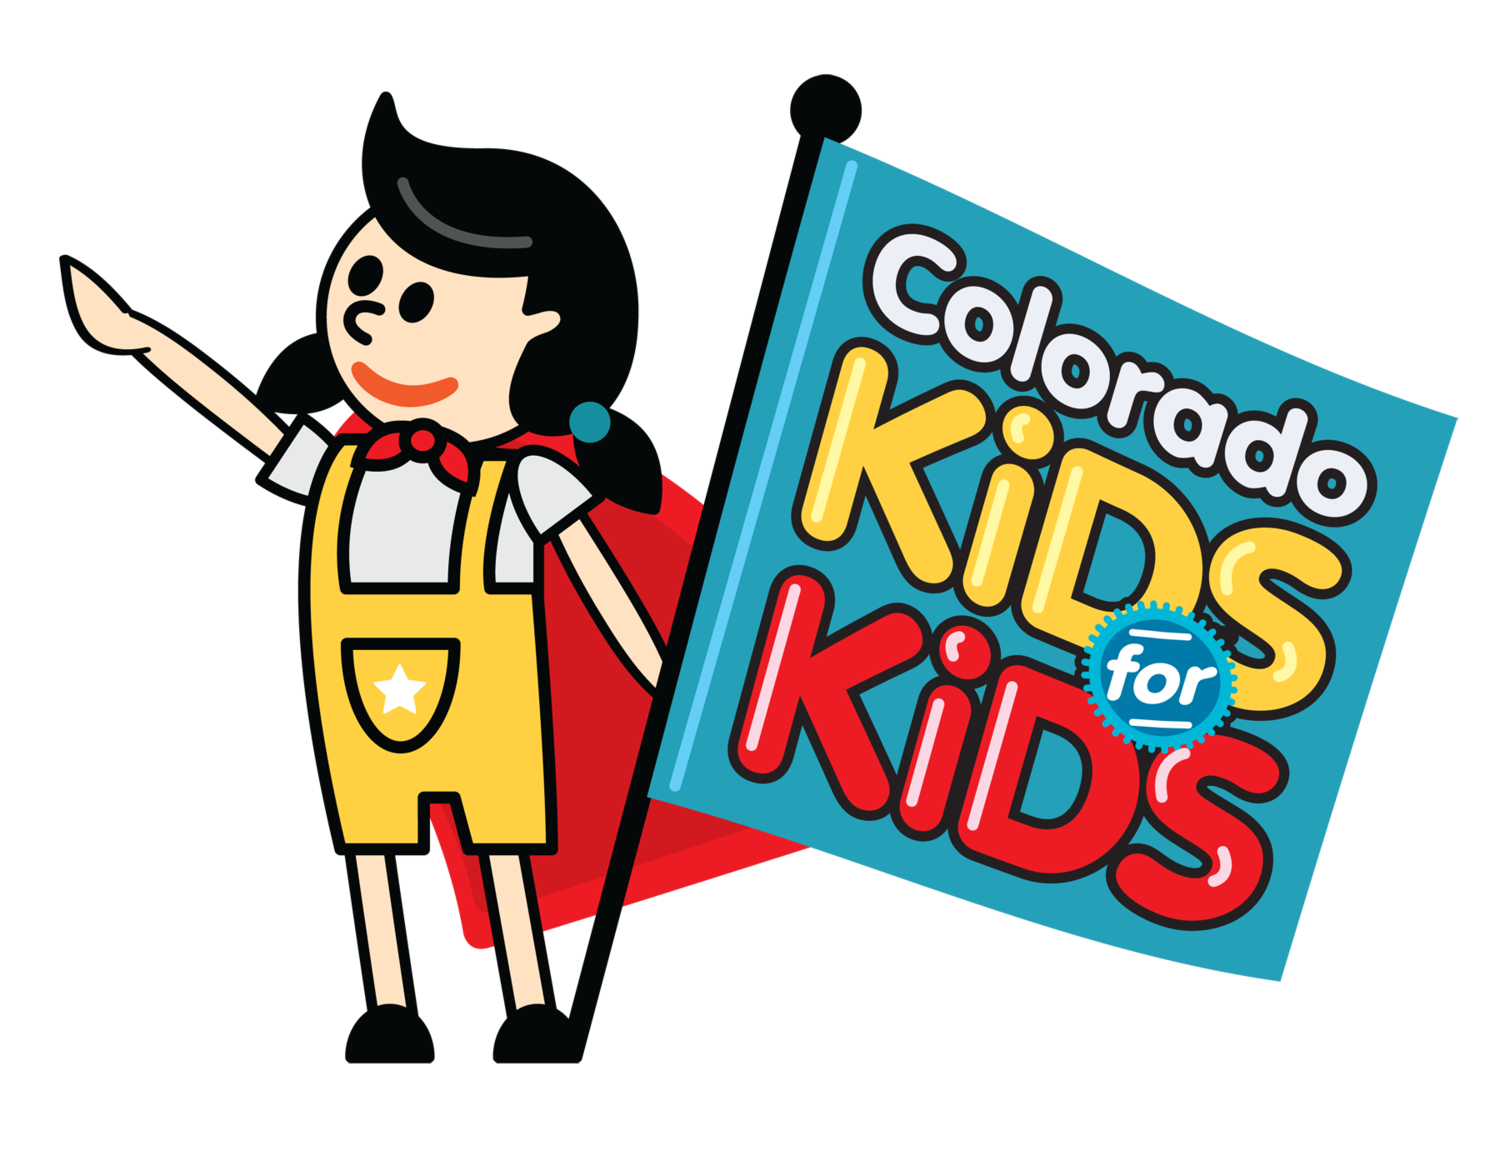 Colorado Kids for Kids